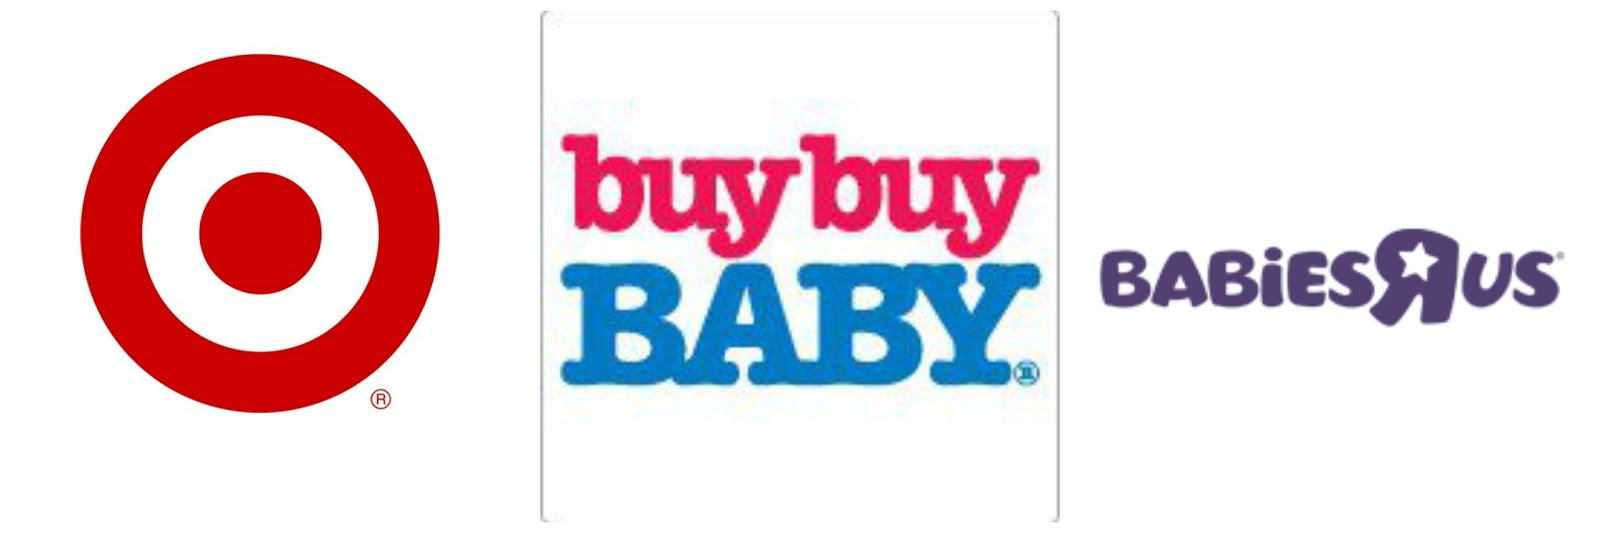 Check out the most popular items in the Buy Buy Baby store and combine them with items from other stores (like Etsy) in your baby registry.